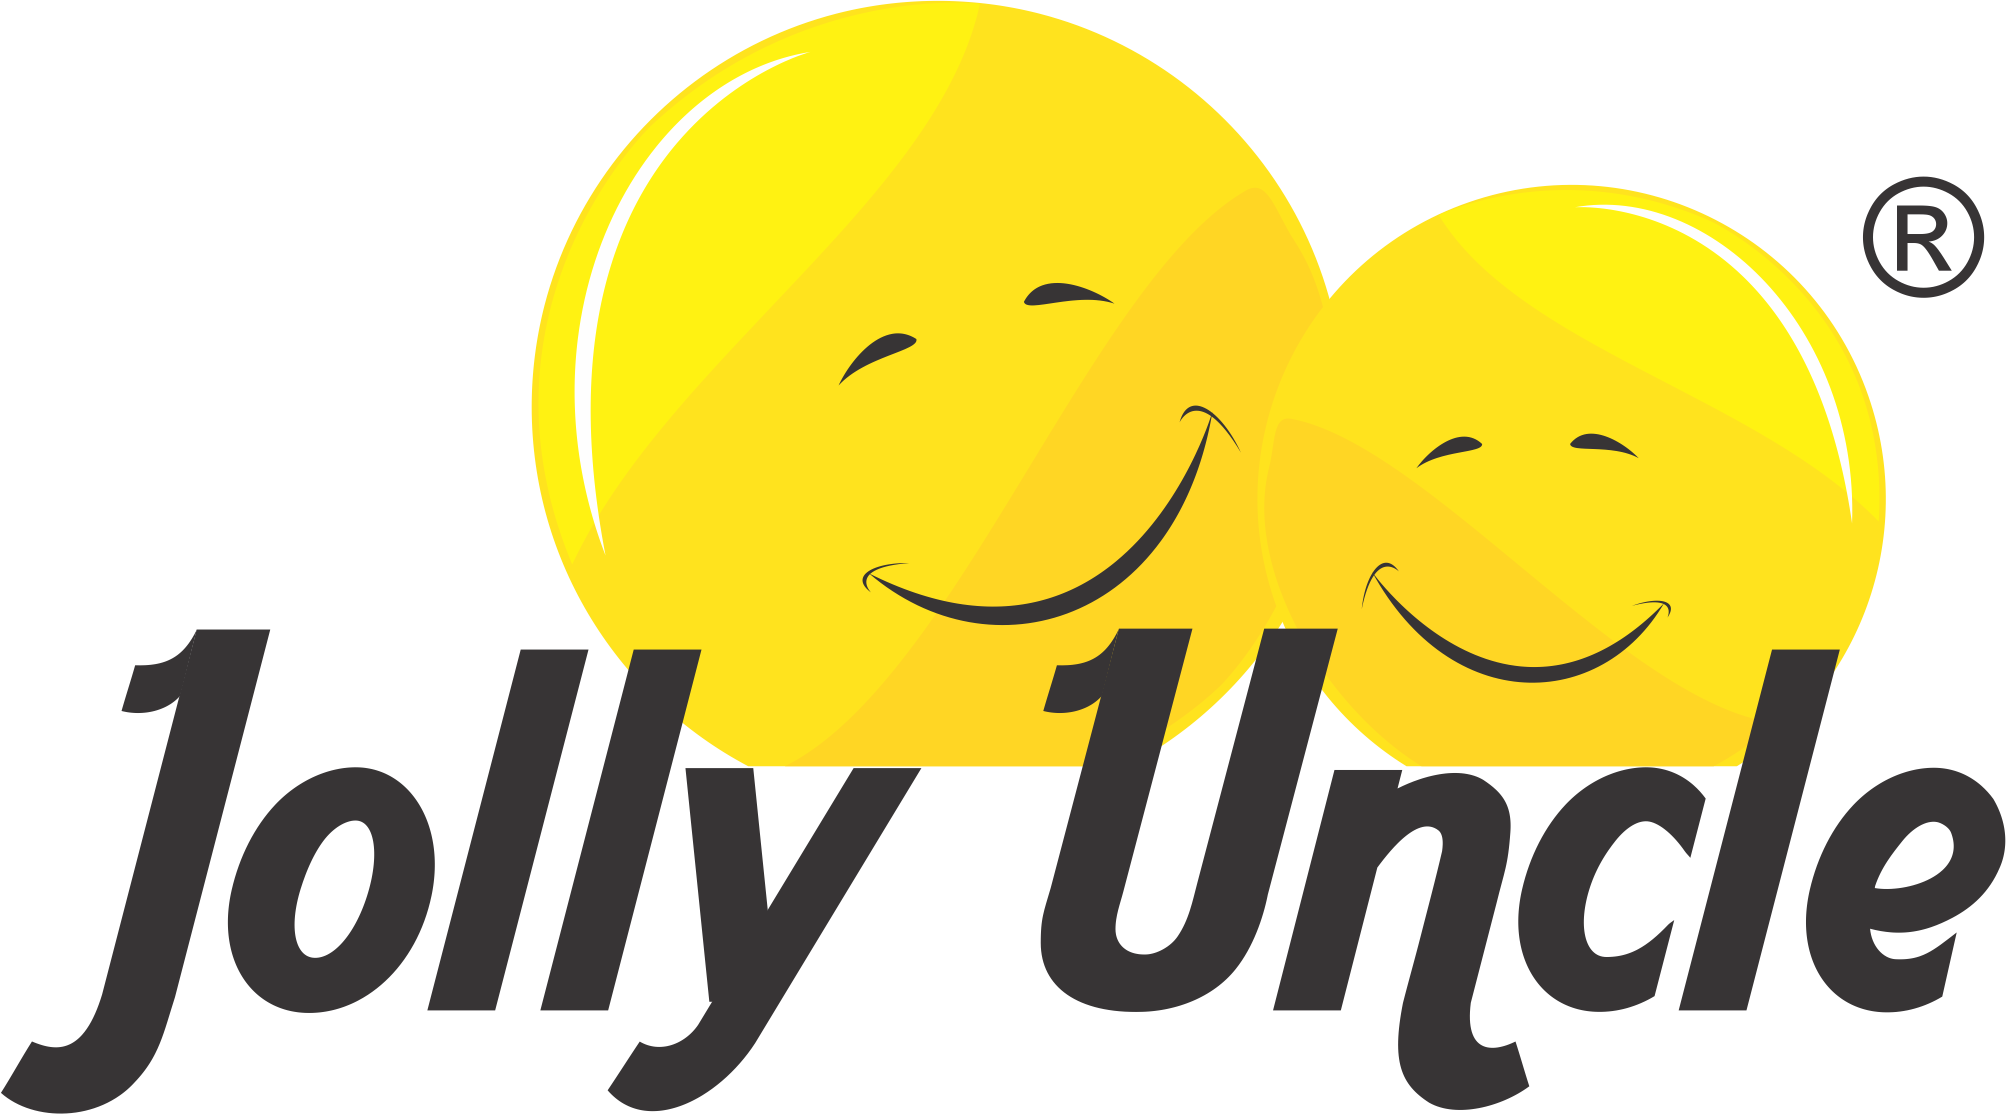 JOLLY UNCLE logo